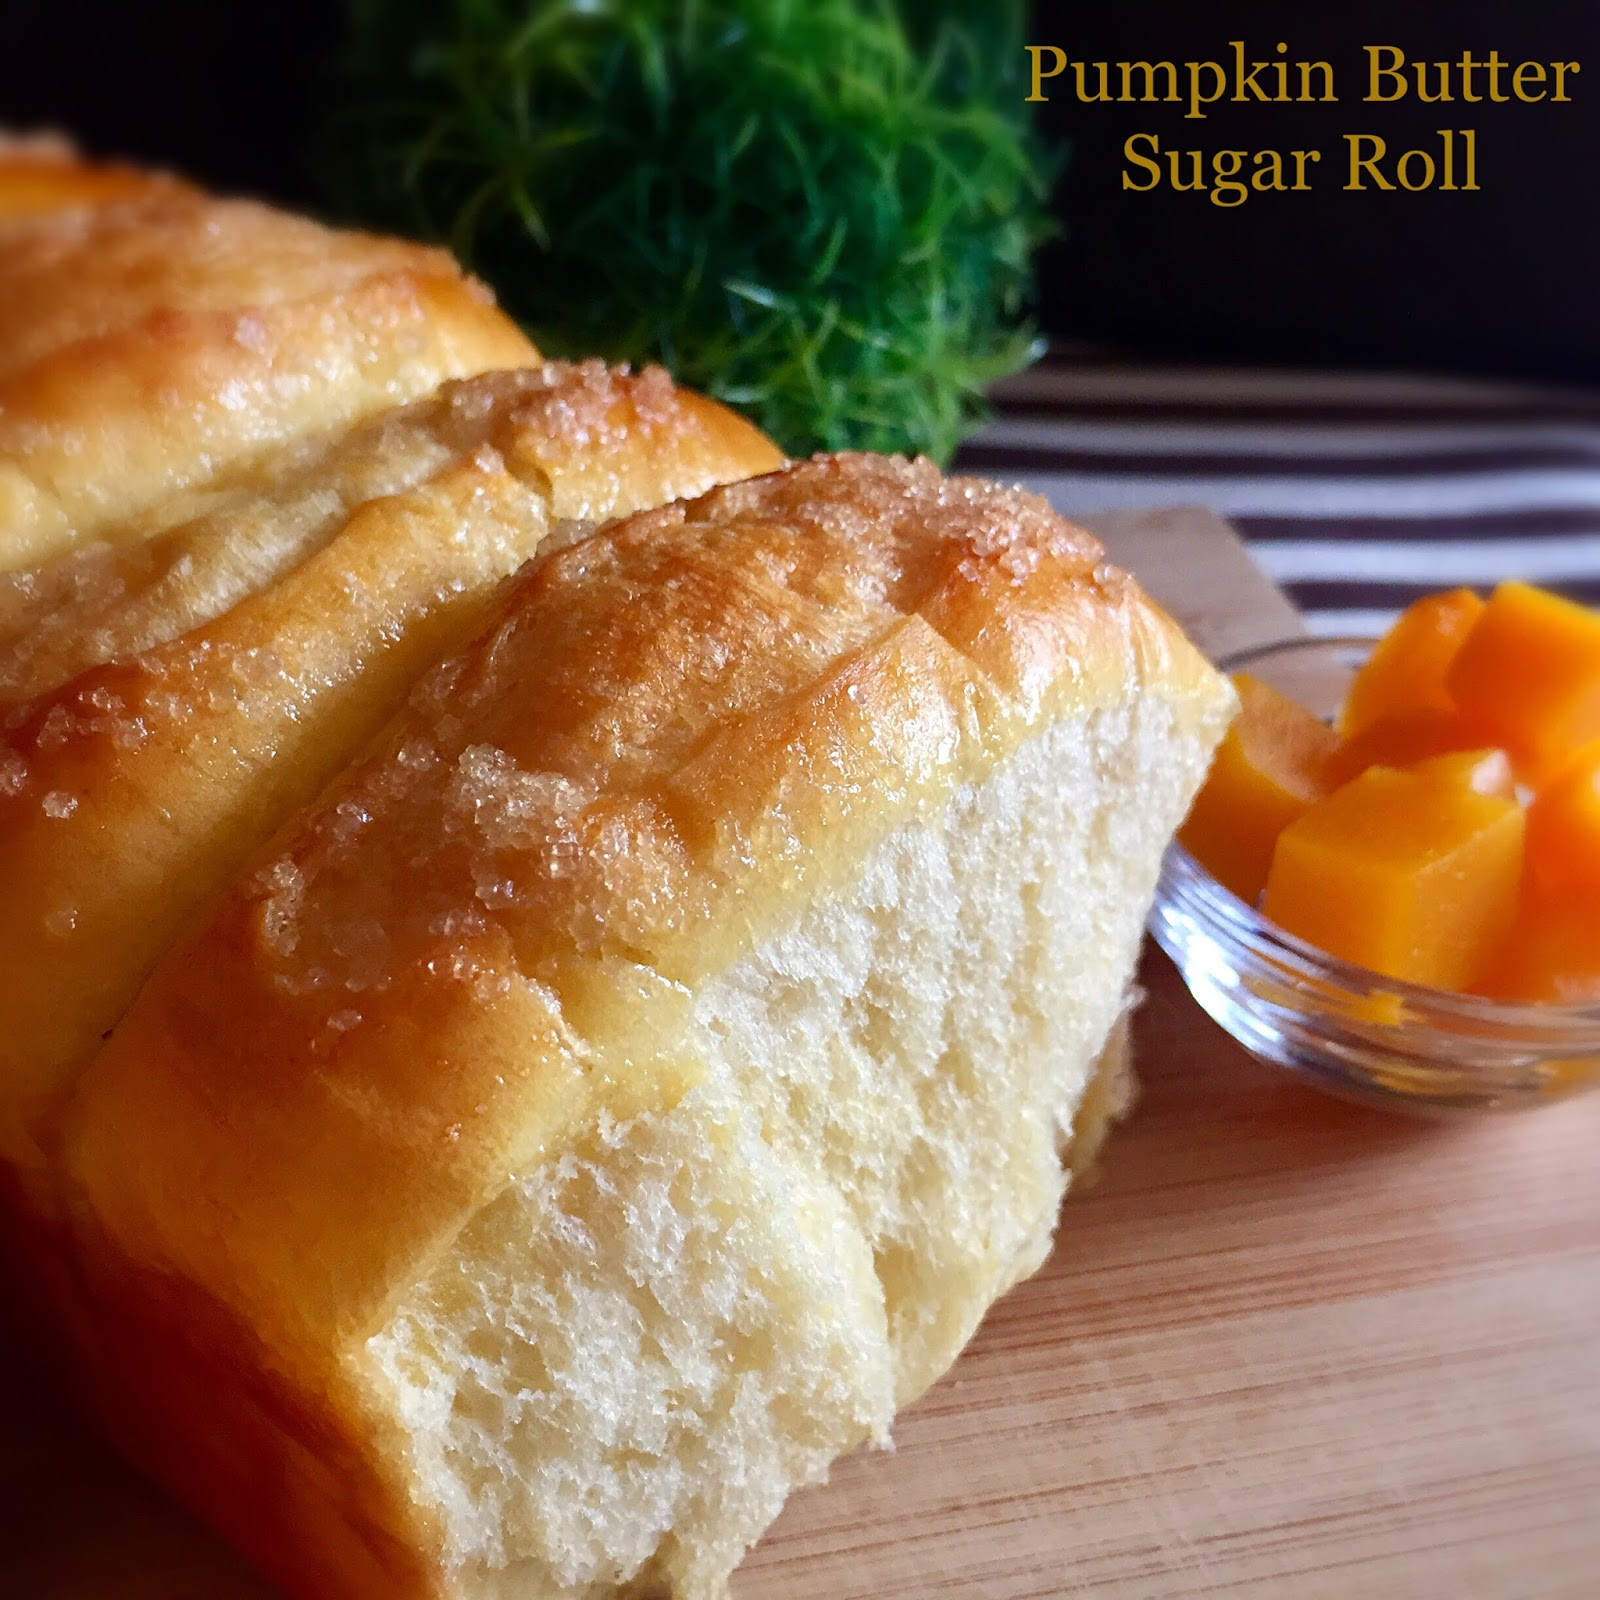 My Mind Patch: Pumpkin Butter Sugar Rolls